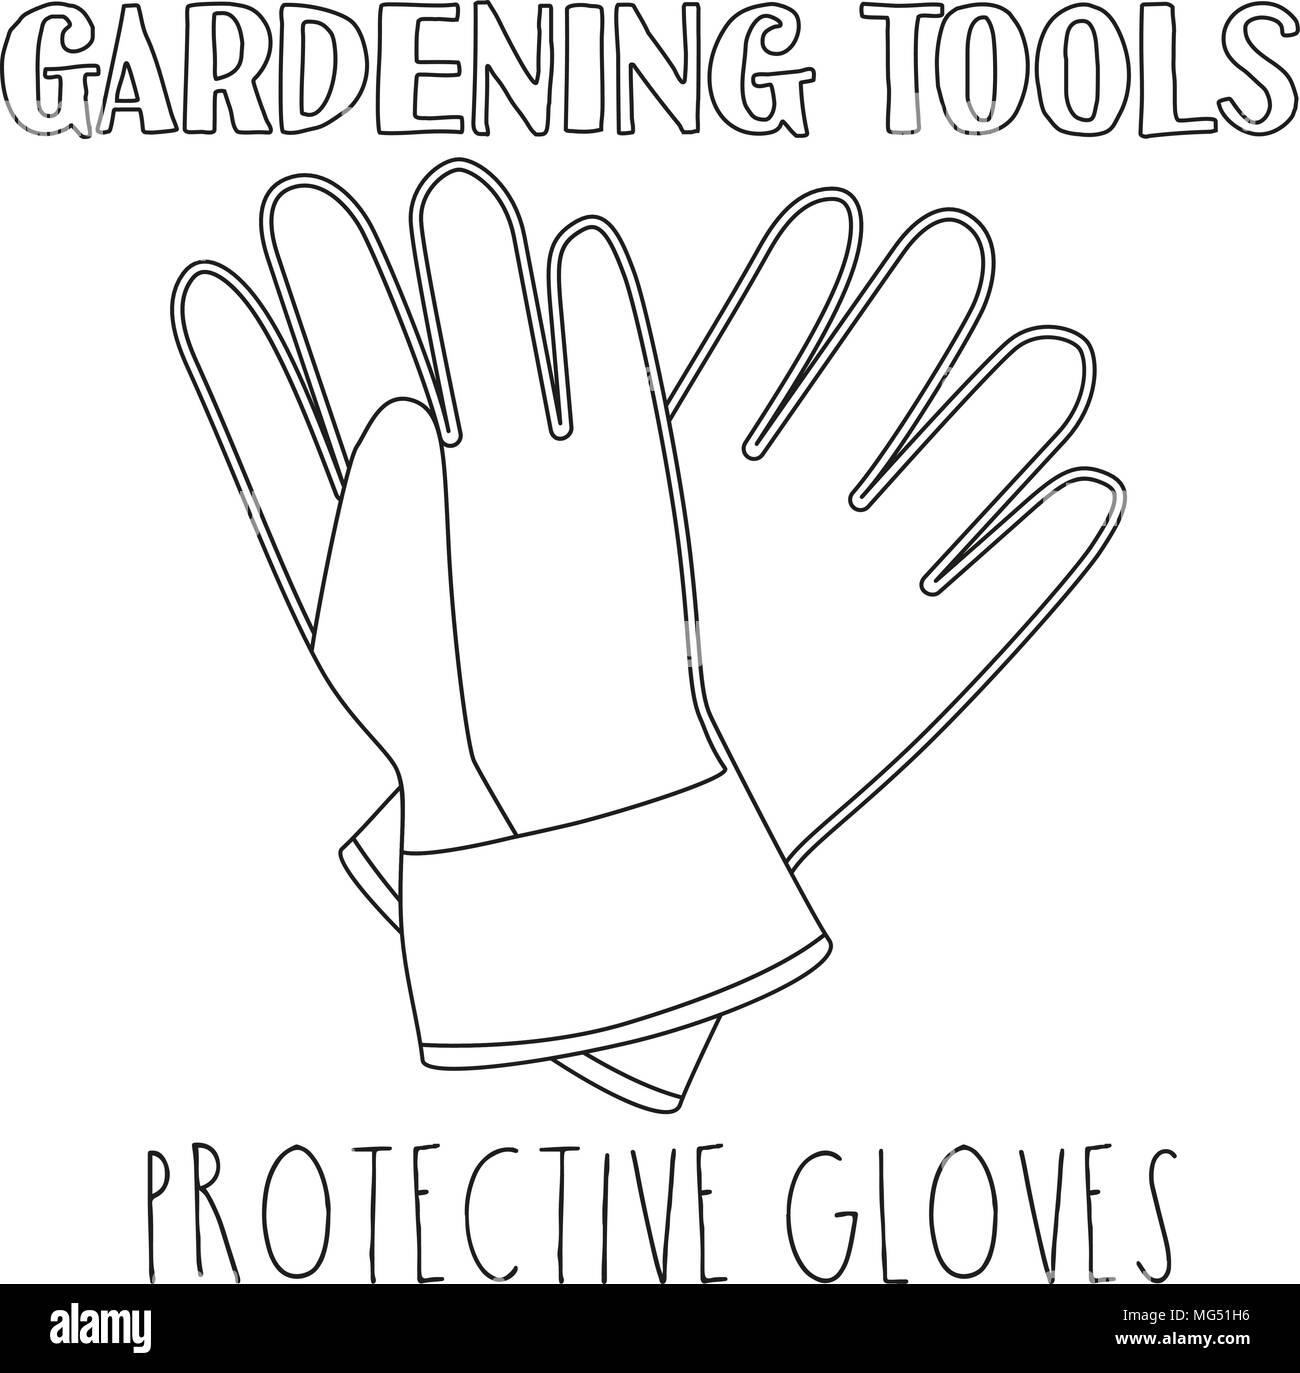 Line Art Black And White Protective Gloves Coloring Book Page For Adults Kids Garden Tool Vector Illustration Gift Card Certificate Sticker